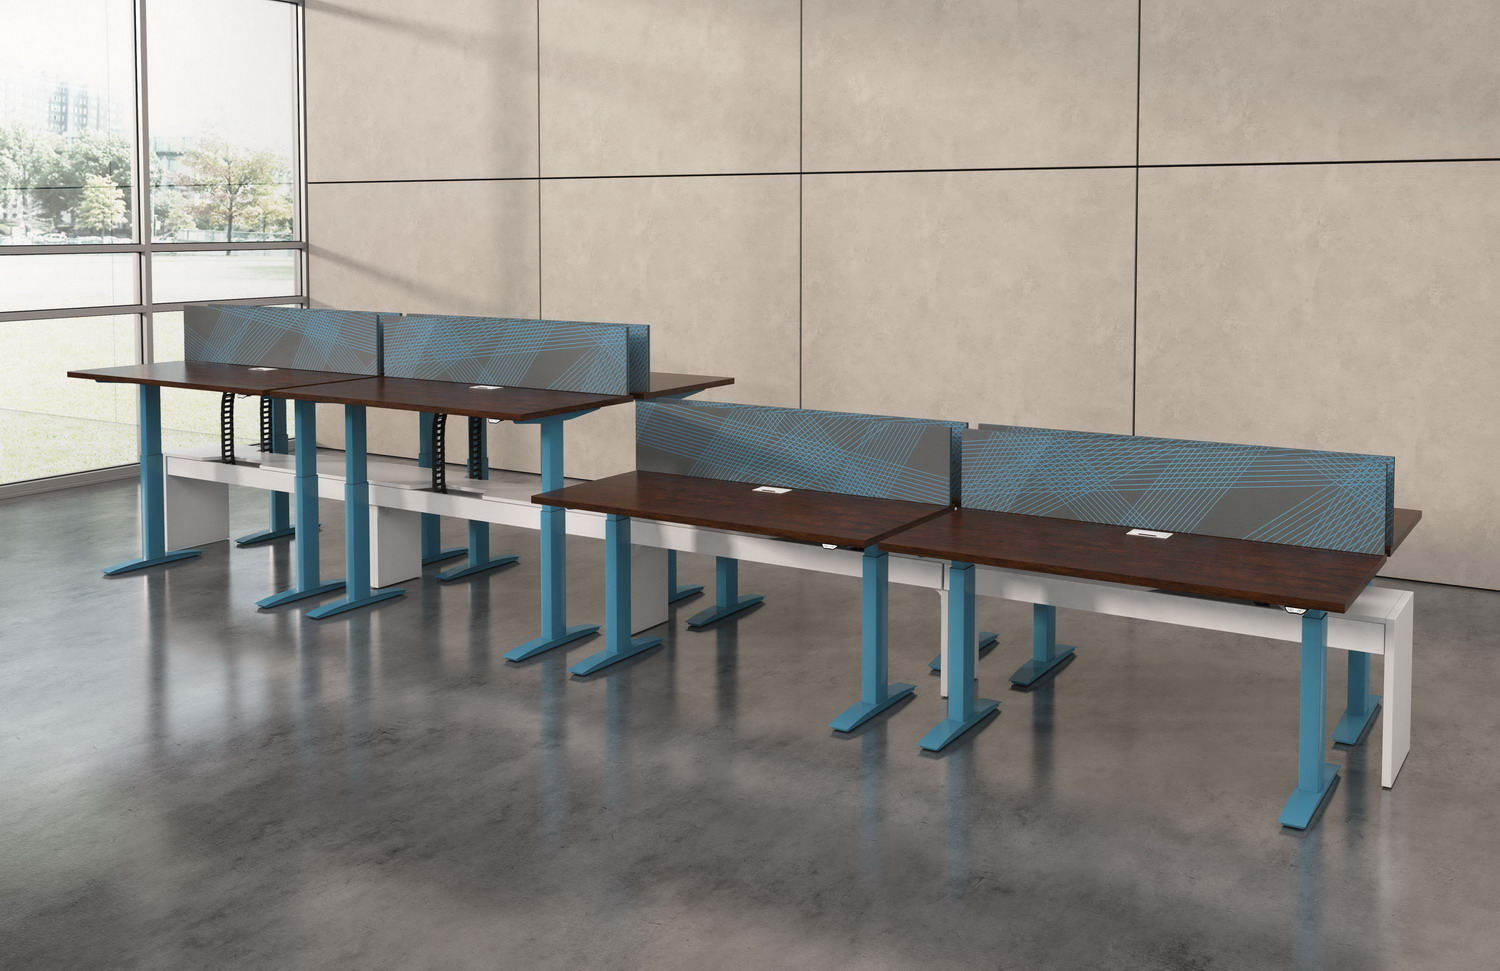 Surprising Contract Furniture Rendering Hover Benching Trinity Download Free Architecture Designs Scobabritishbridgeorg